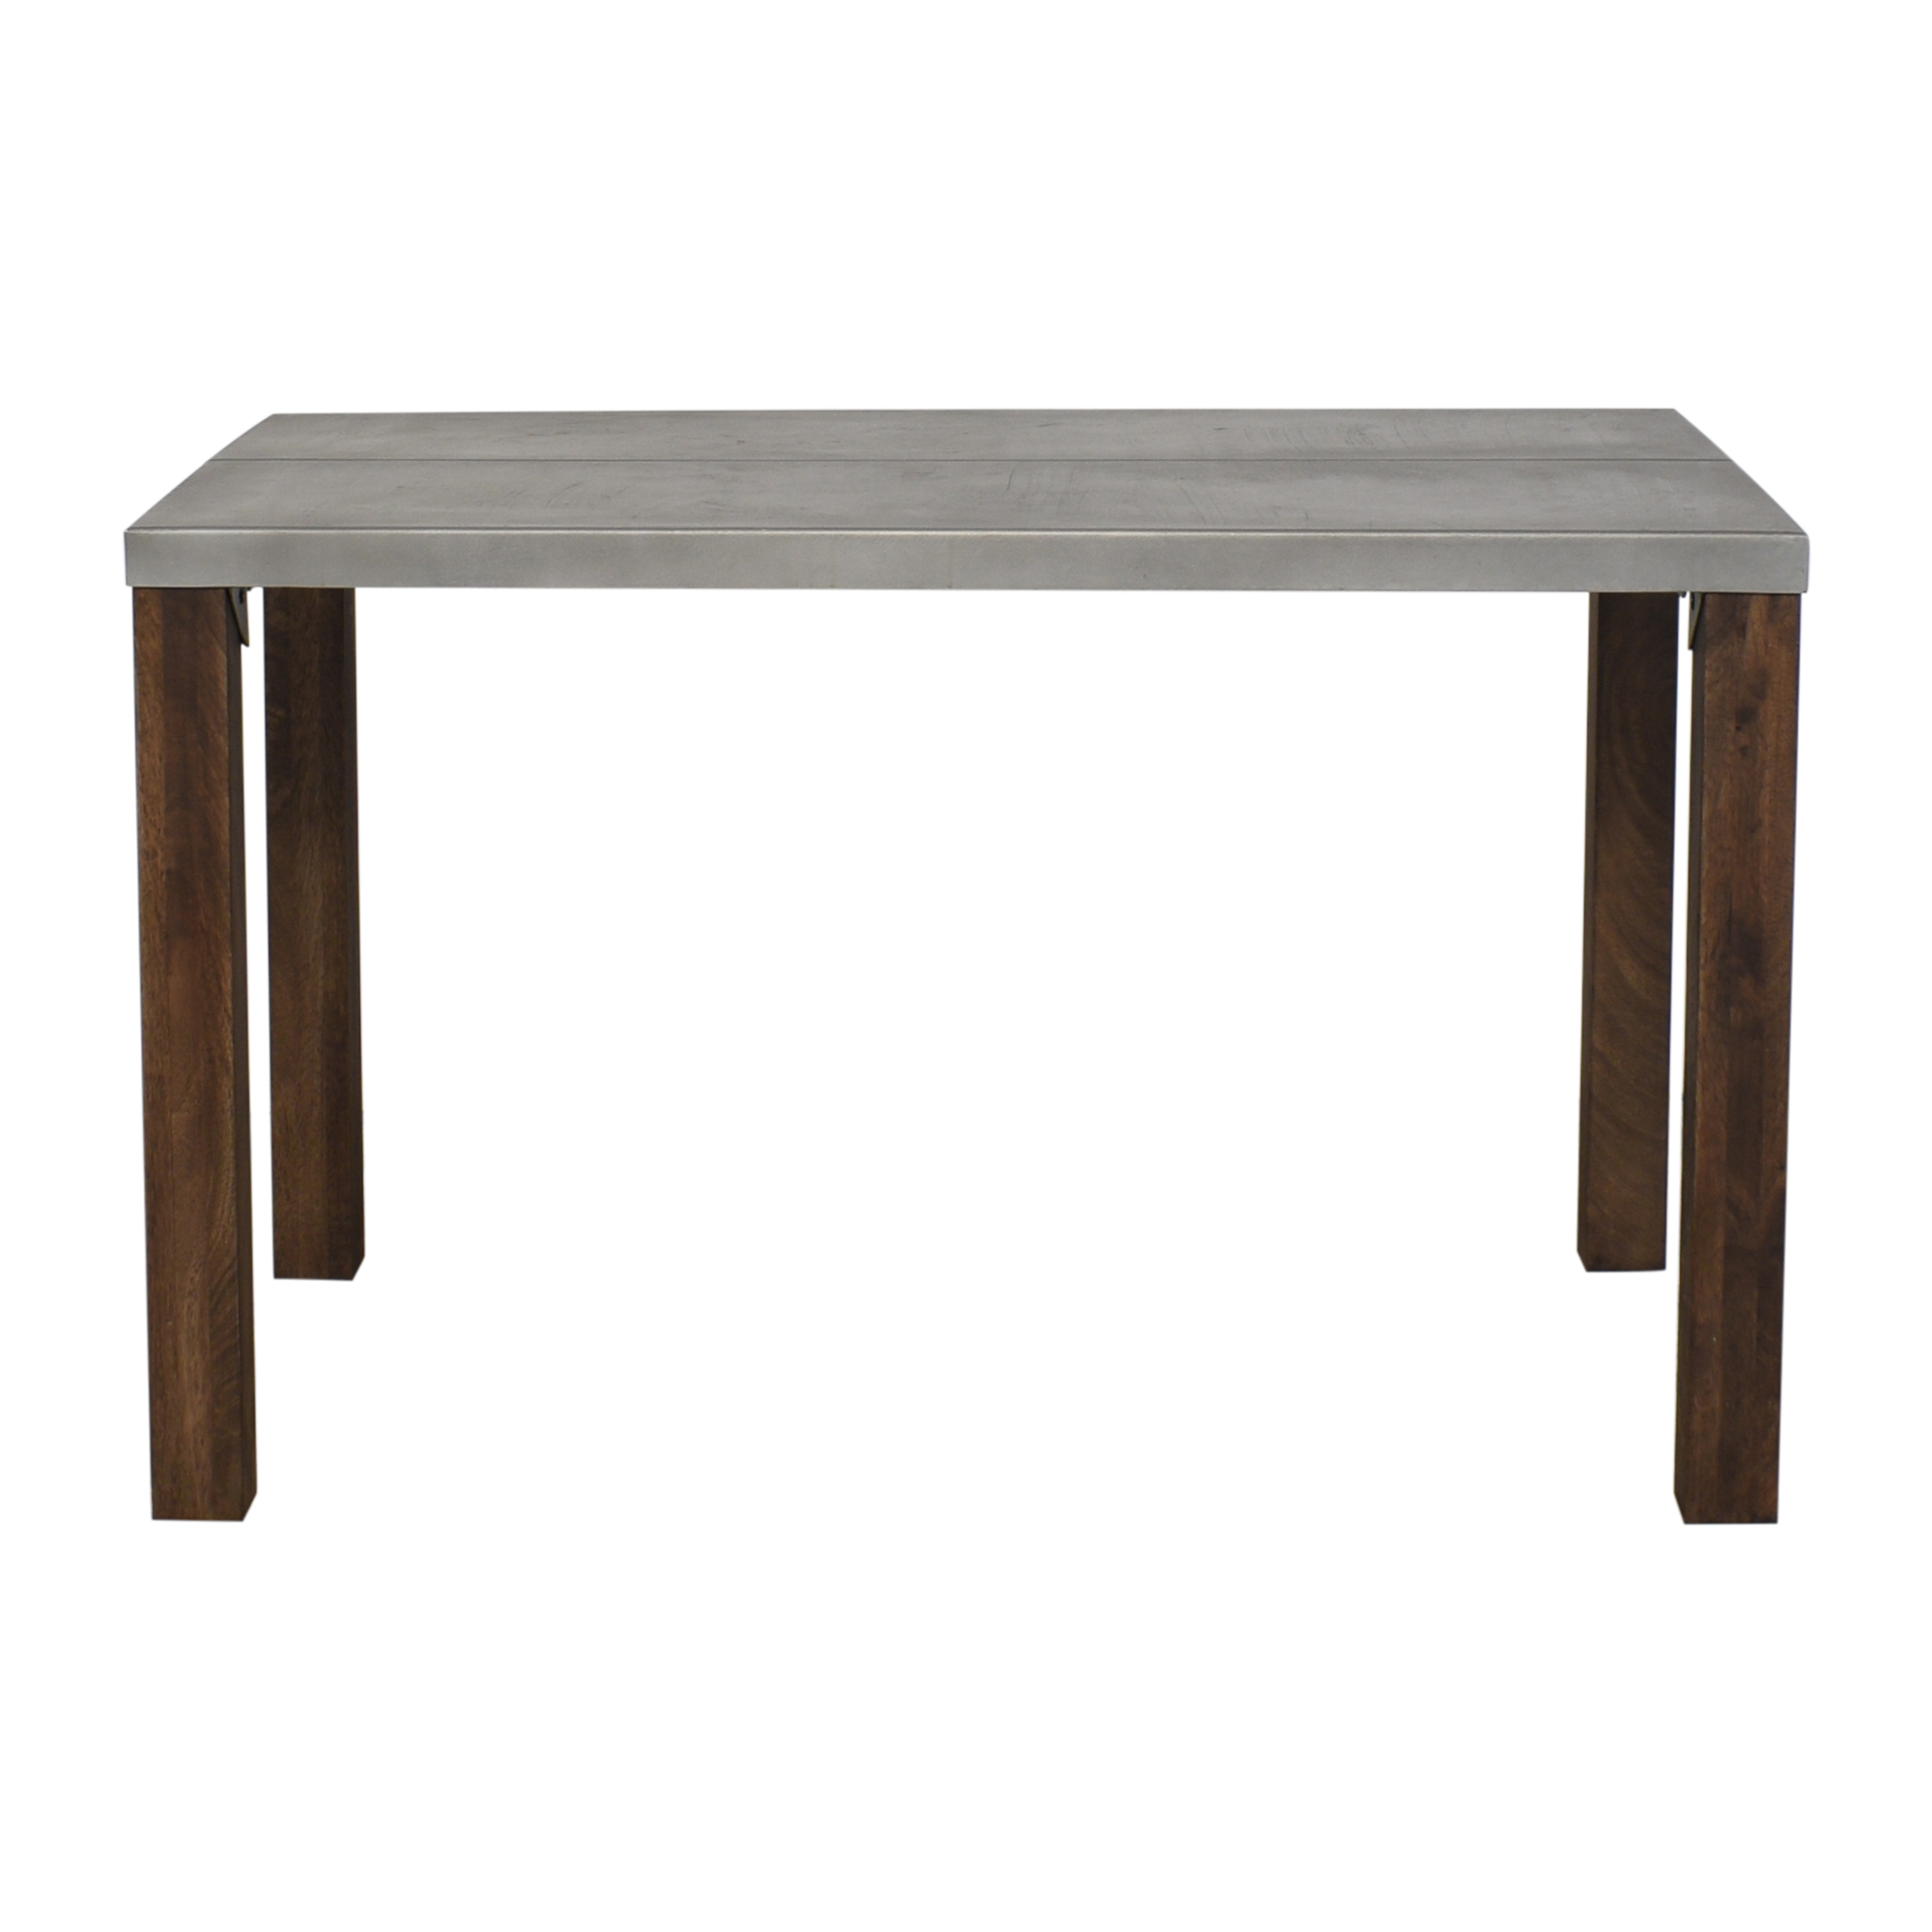 Crate & Barrel Crate & Barrel Galvin Dining Table pa